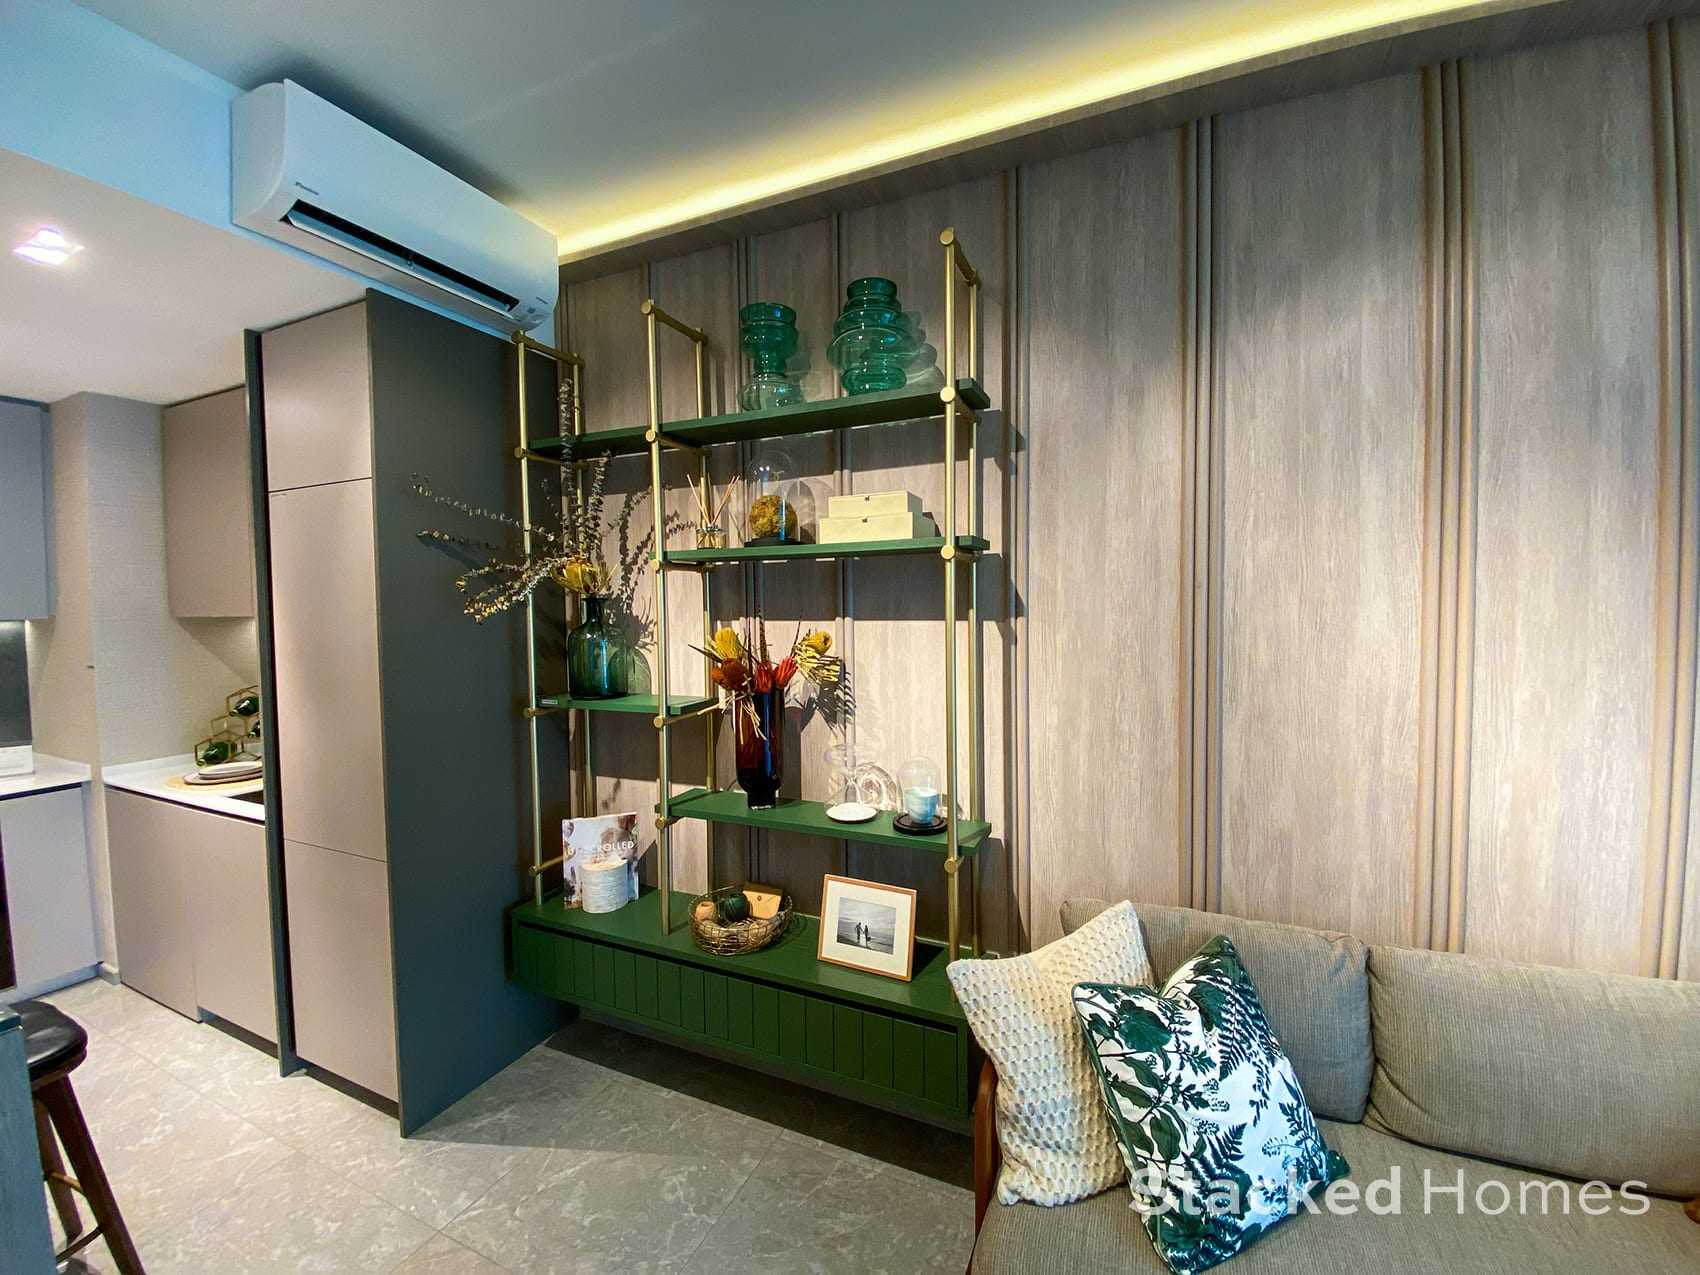 sengkang grand residences 2 bedroom detailing